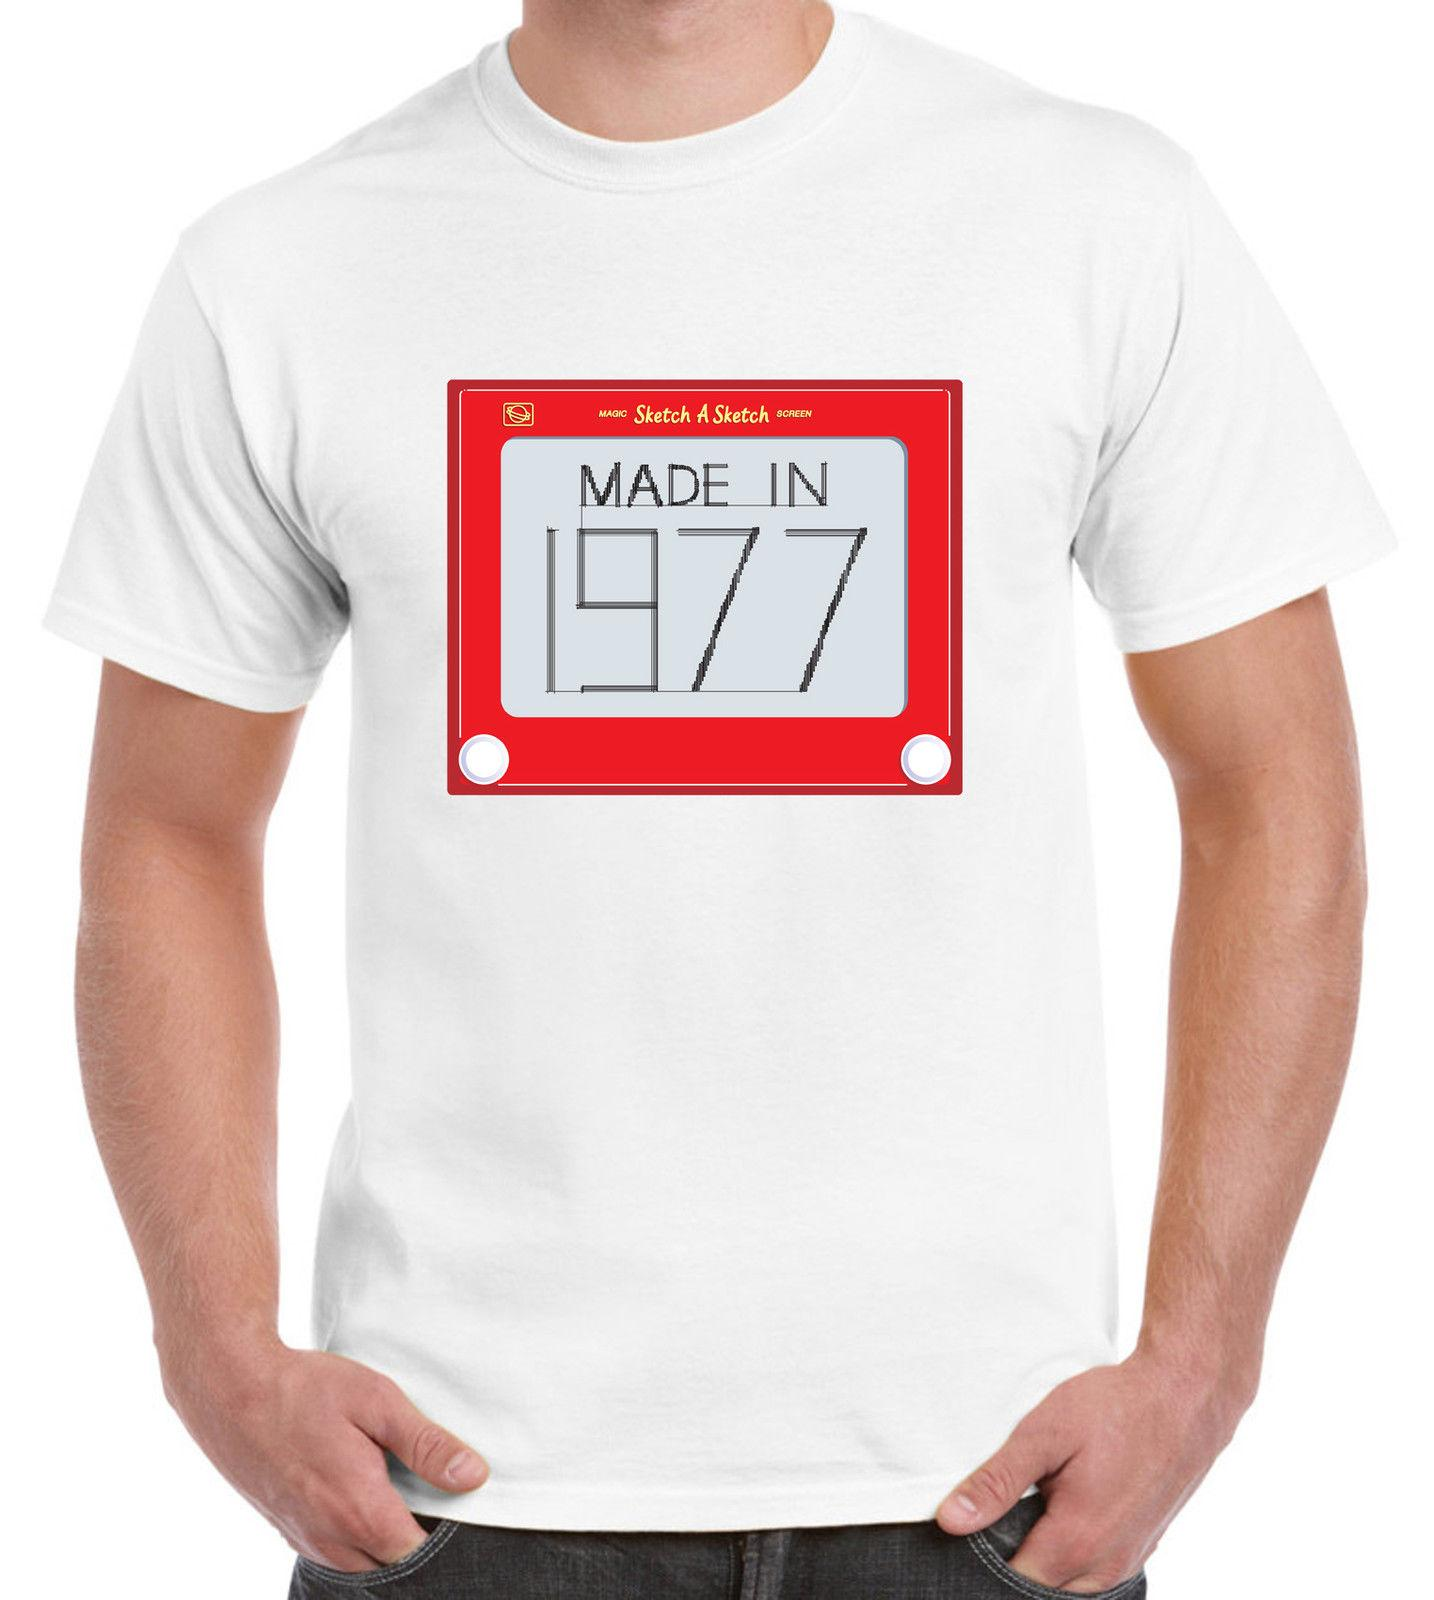 MADE IN 1987 30TH BIRTHDAY T SHIRT Gift Present Sizes S To 3XL Funny Shirts For Sale Awesome Shirt Design From Dhgategiff 1101